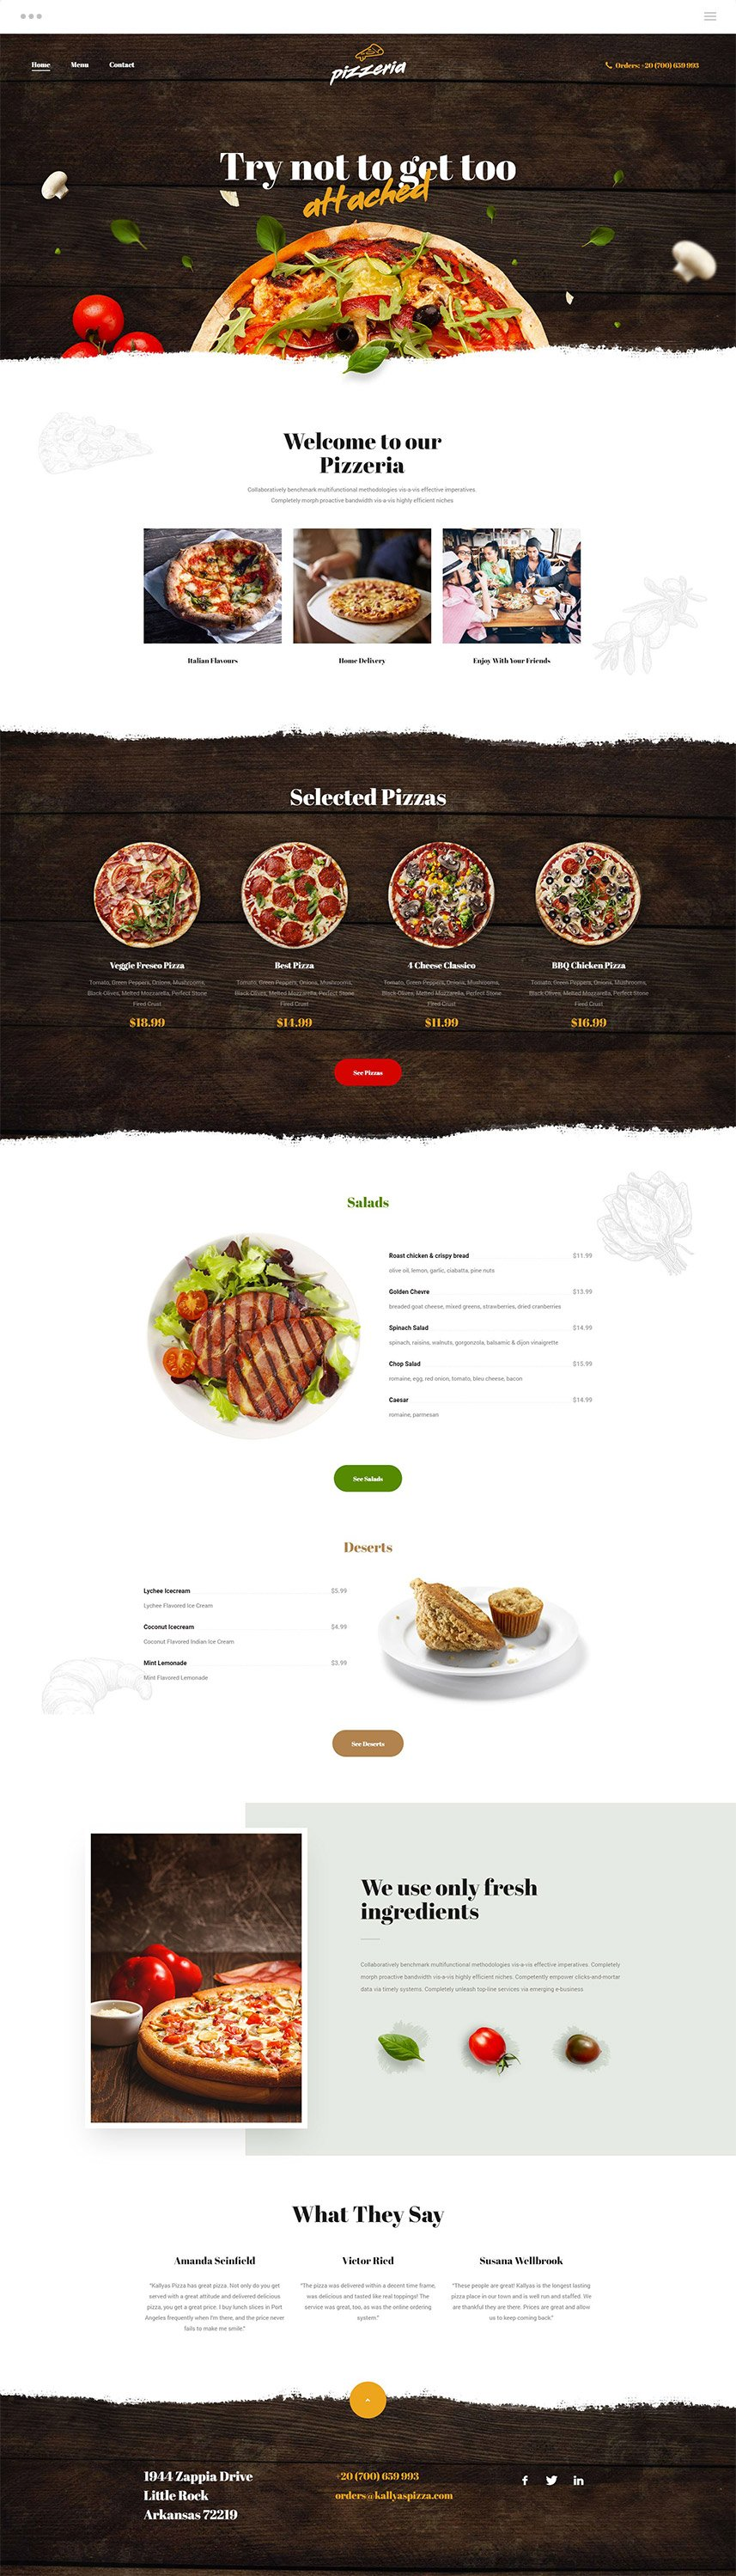 Pizza WordPress Theme - Kallyas